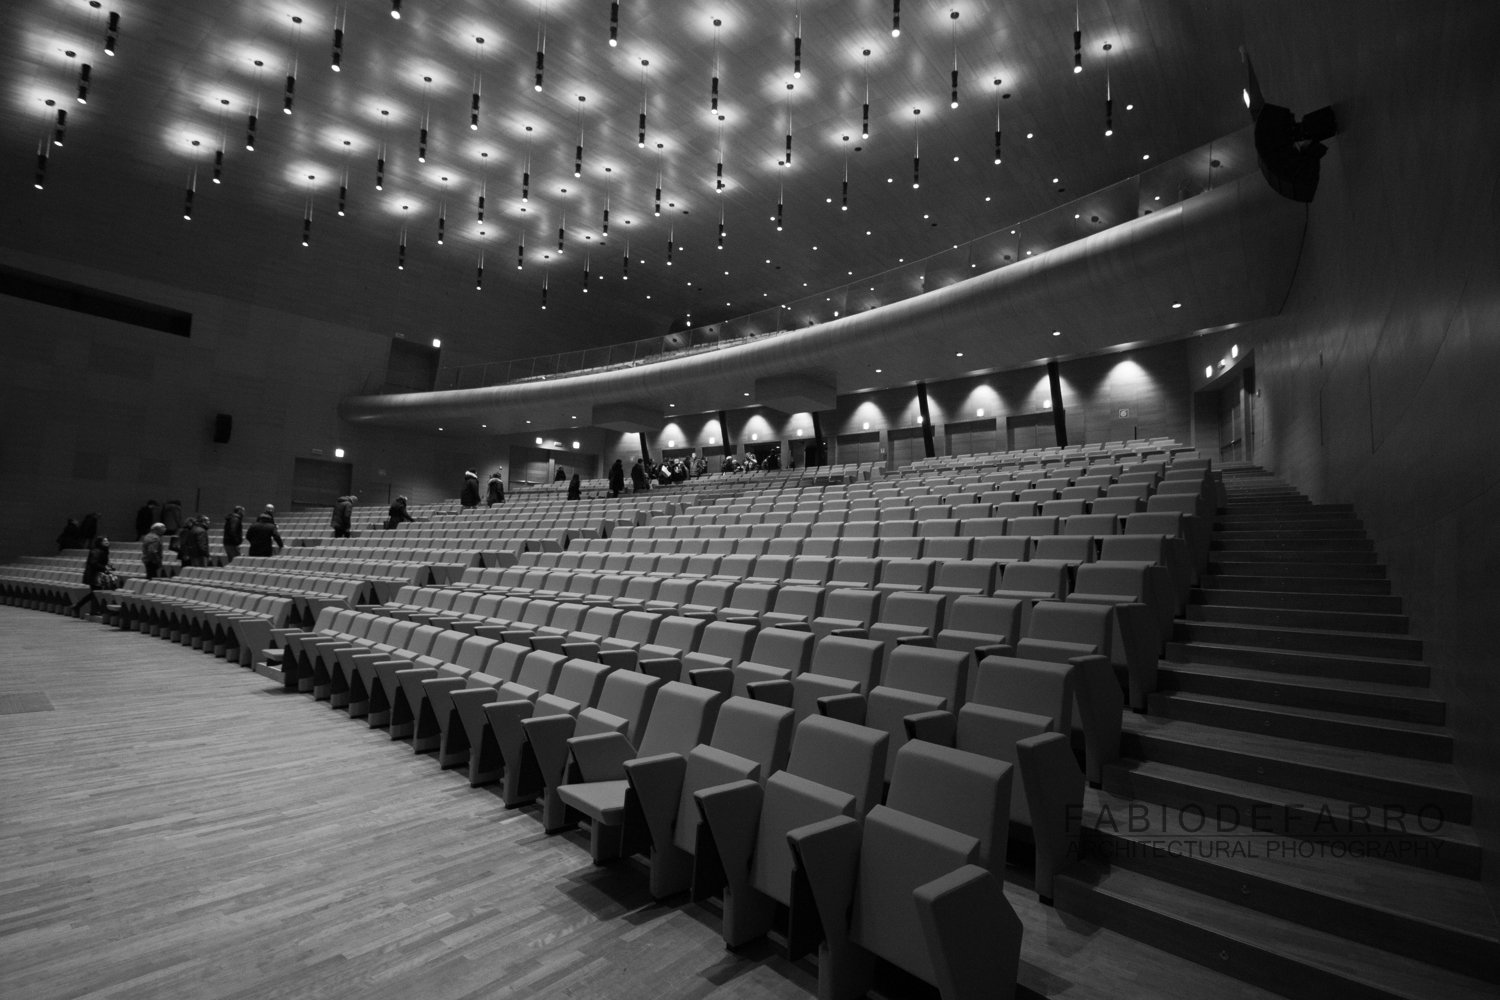 Convention Center - Rome The Cloud - Fuxas Studio - Auditorium